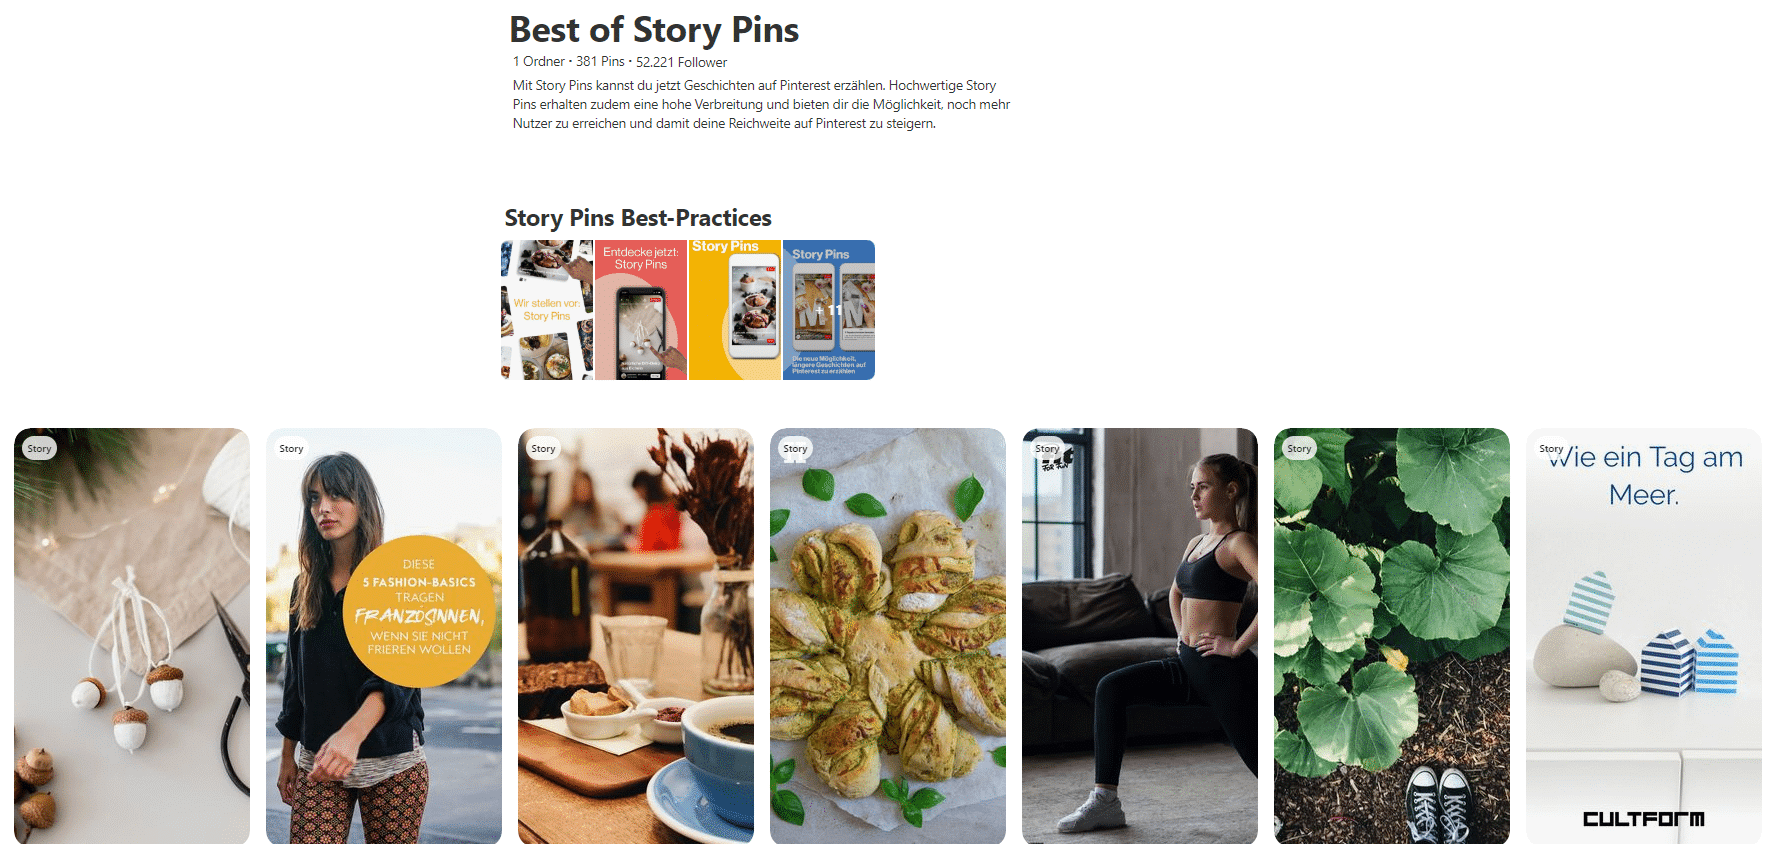 (9) Best of Story Pins